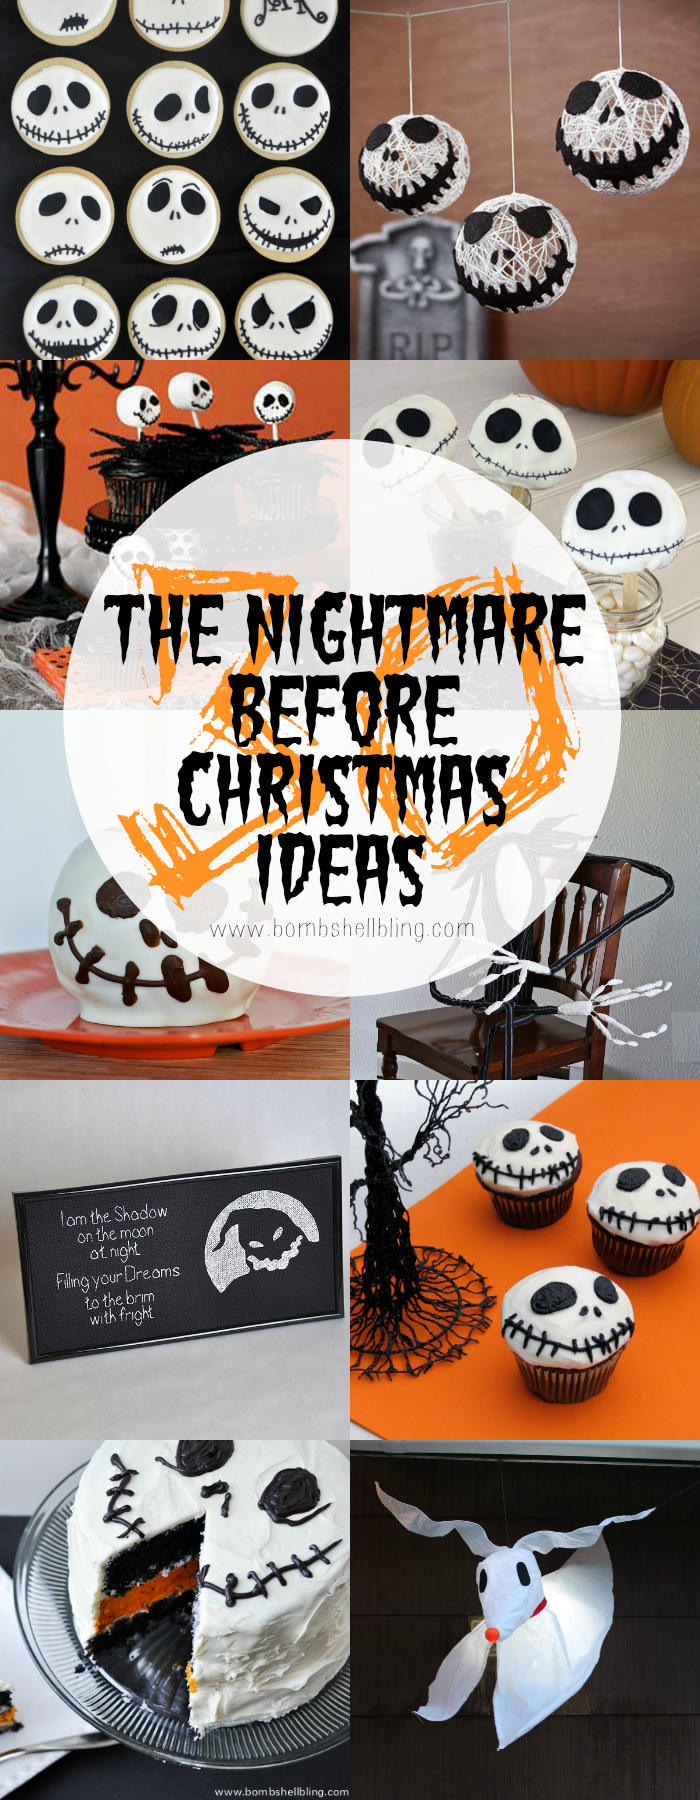 Nightmare Before Christmas Party Ideas Part - 24: Bombshell Bling